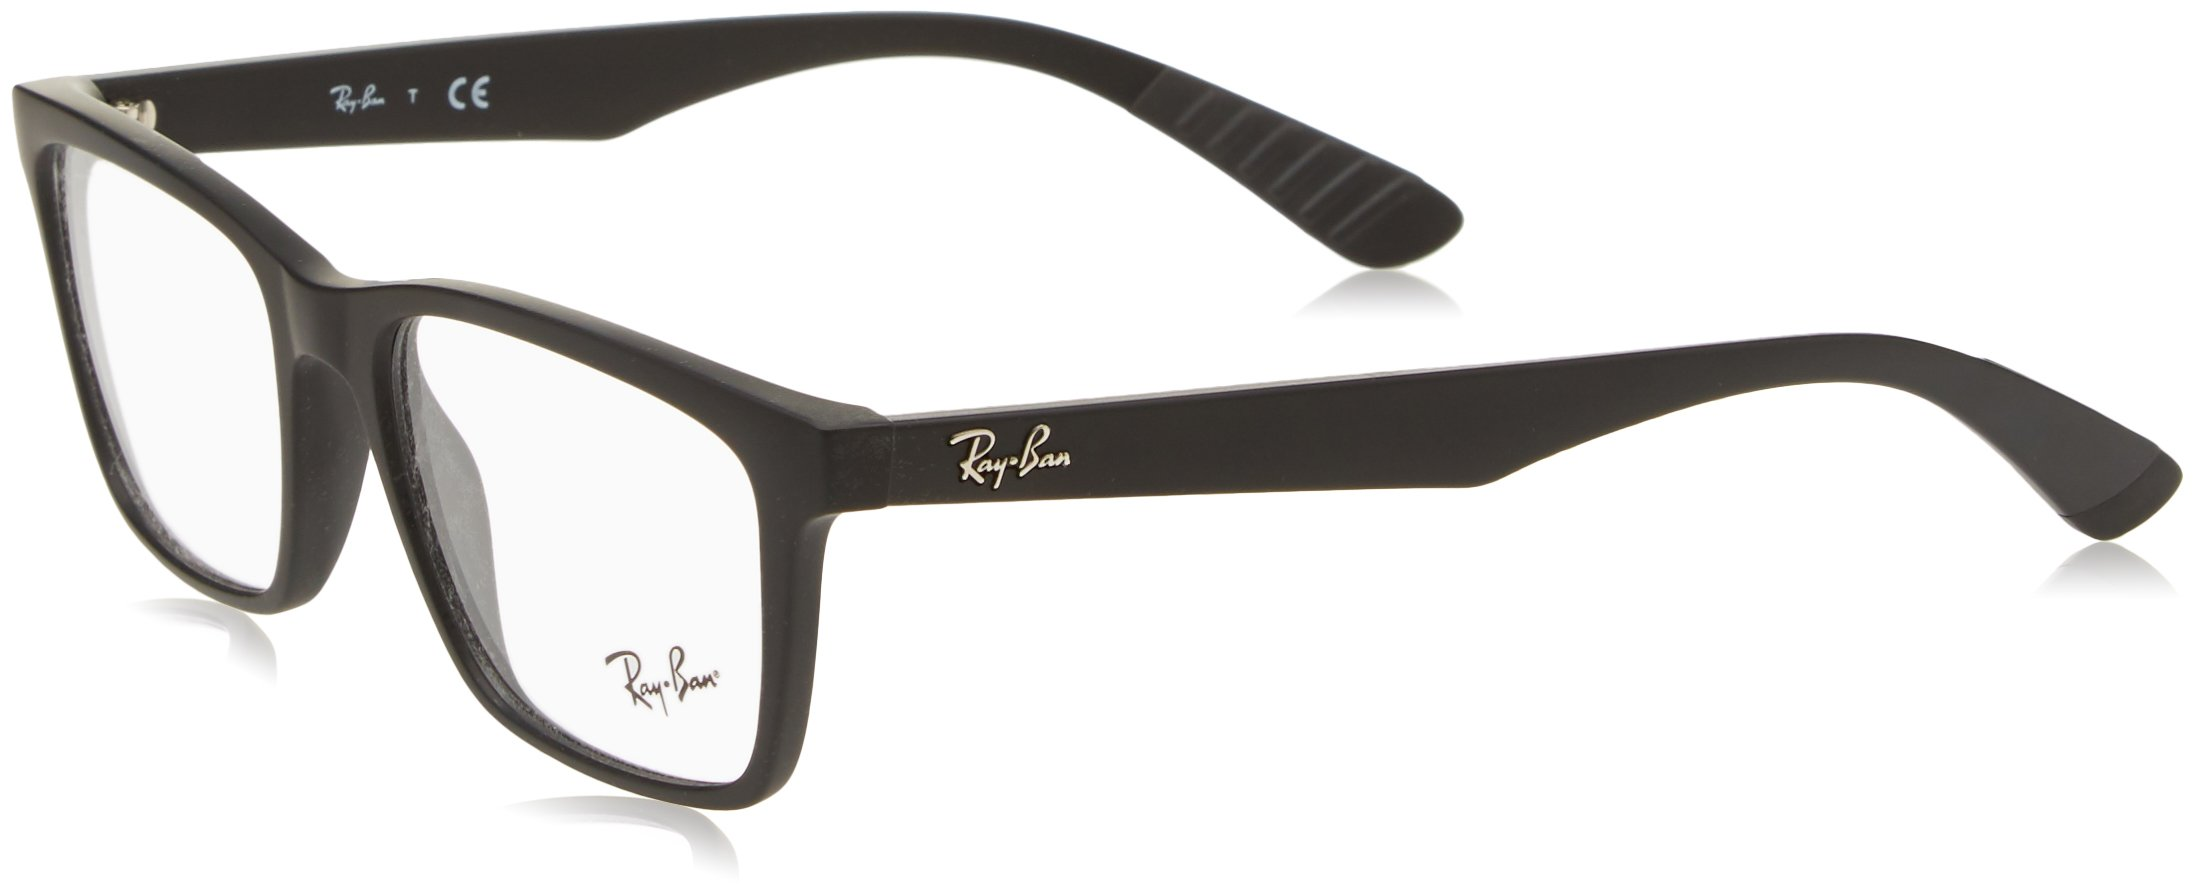 RAY-BAN RX7025 Square Eyeglass Frames, Matte Black/Demo Lens, 55 mm by Ray-Ban